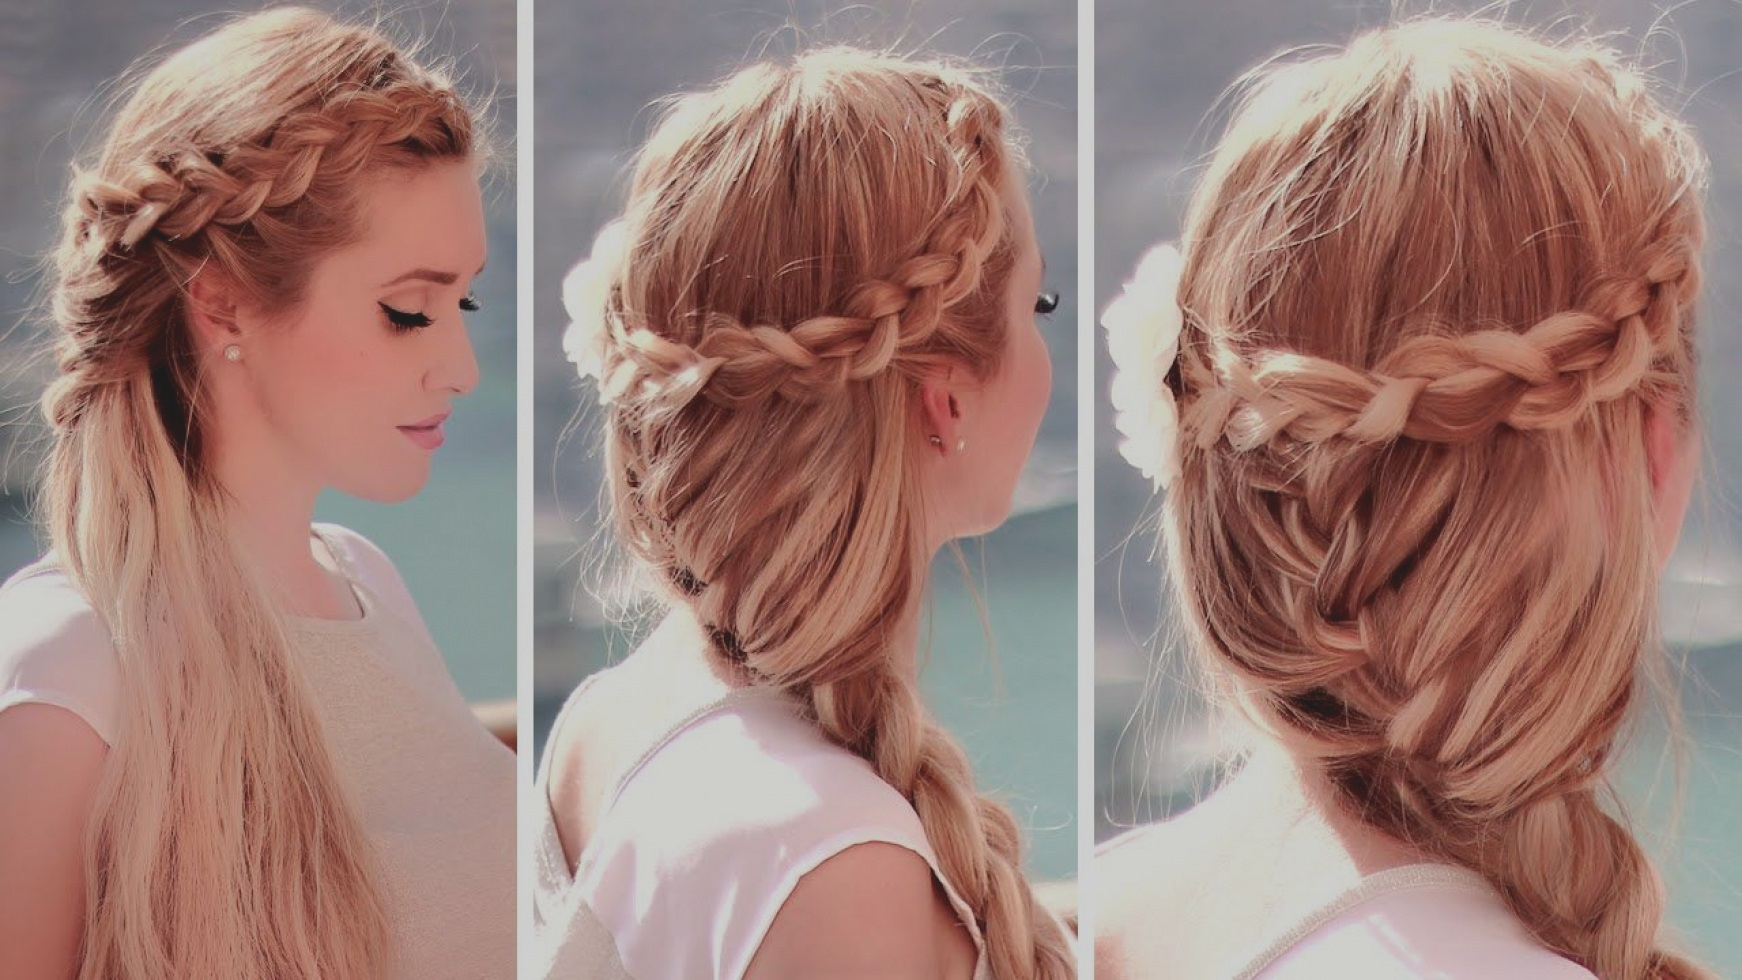 Coiffure Mariage Simple Cheveux Courts Coiffure Facile Cheveux Mi Long Soirée Coiffure Simple